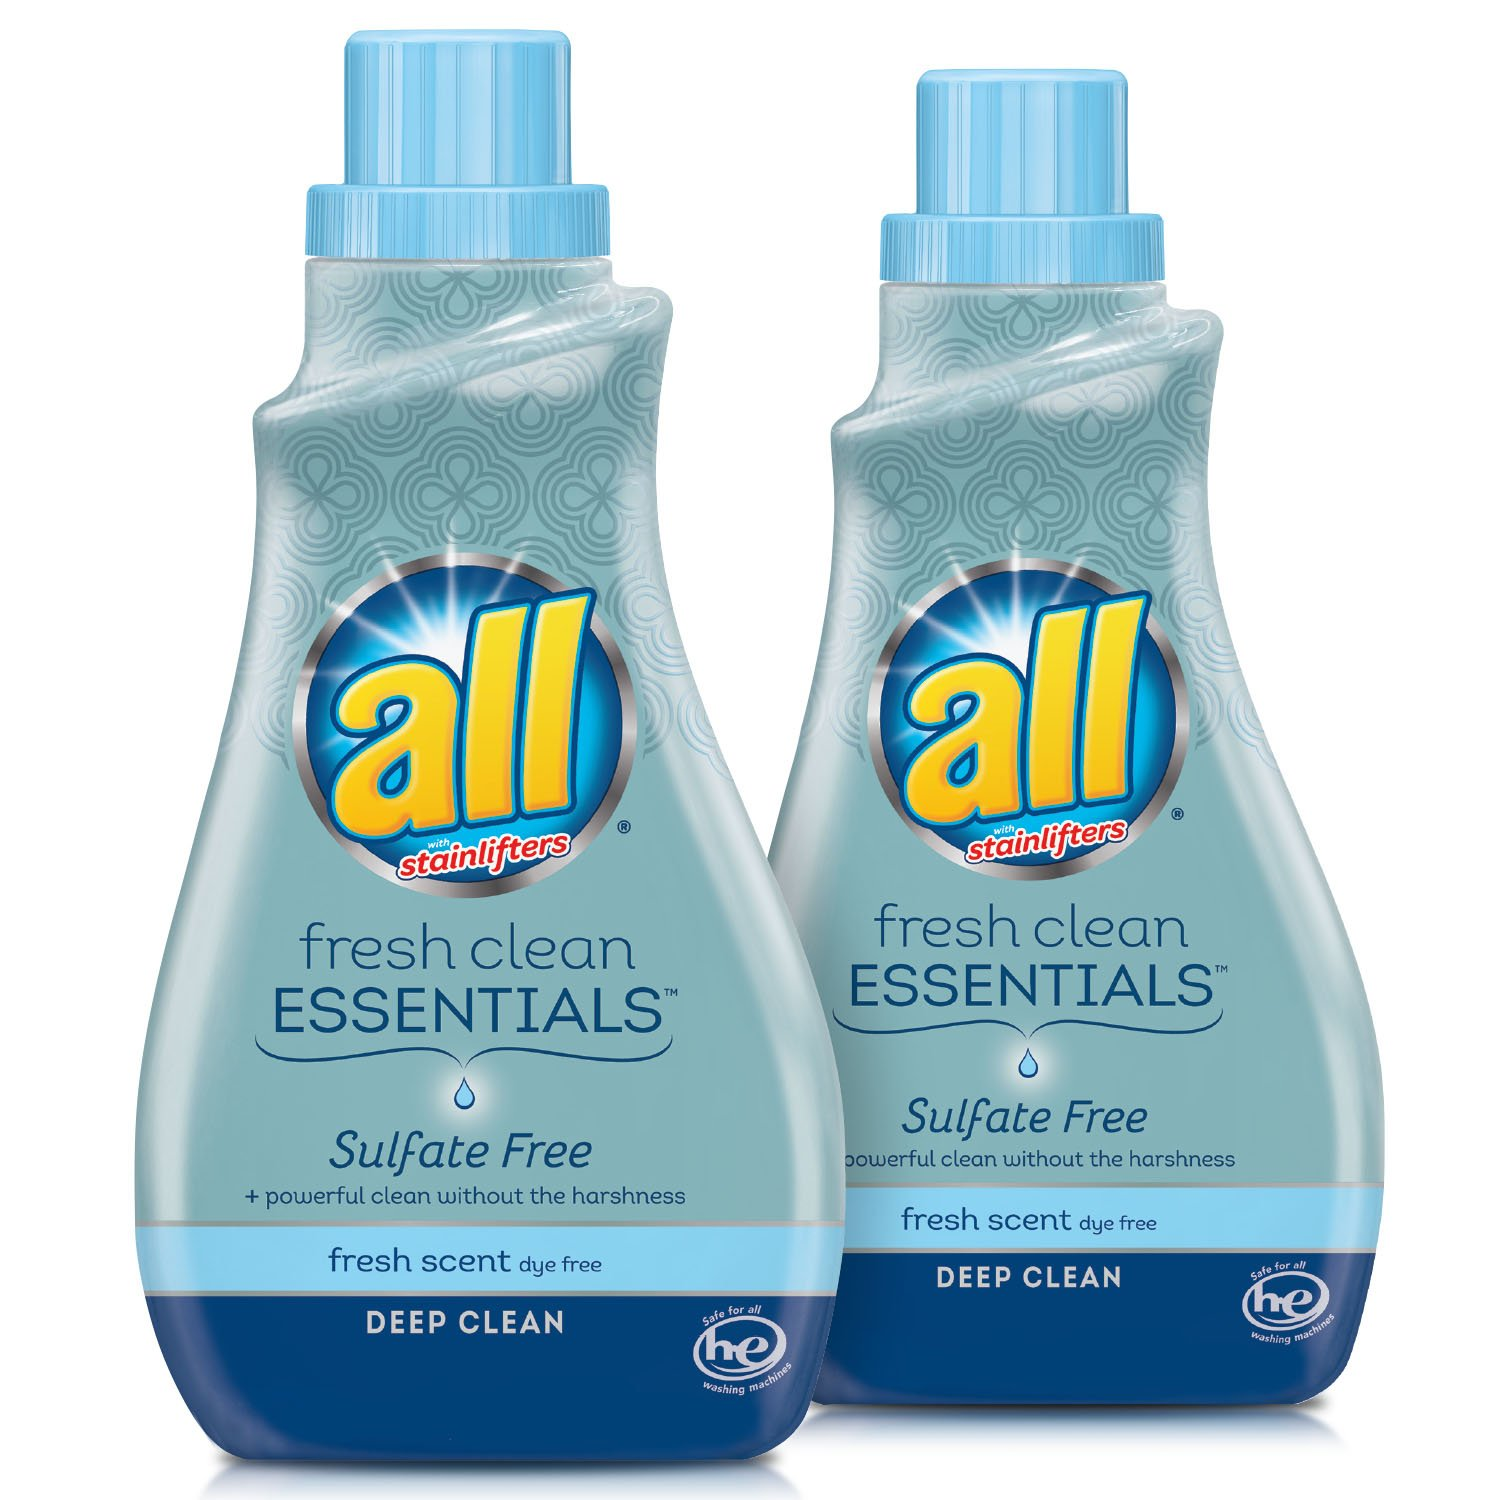 all Fresh Clean Essentials Laundry Detergent, Sulfate Free, Fresh Scent, 30 Fluid Ounces, 2 Count, 46 Total Loads